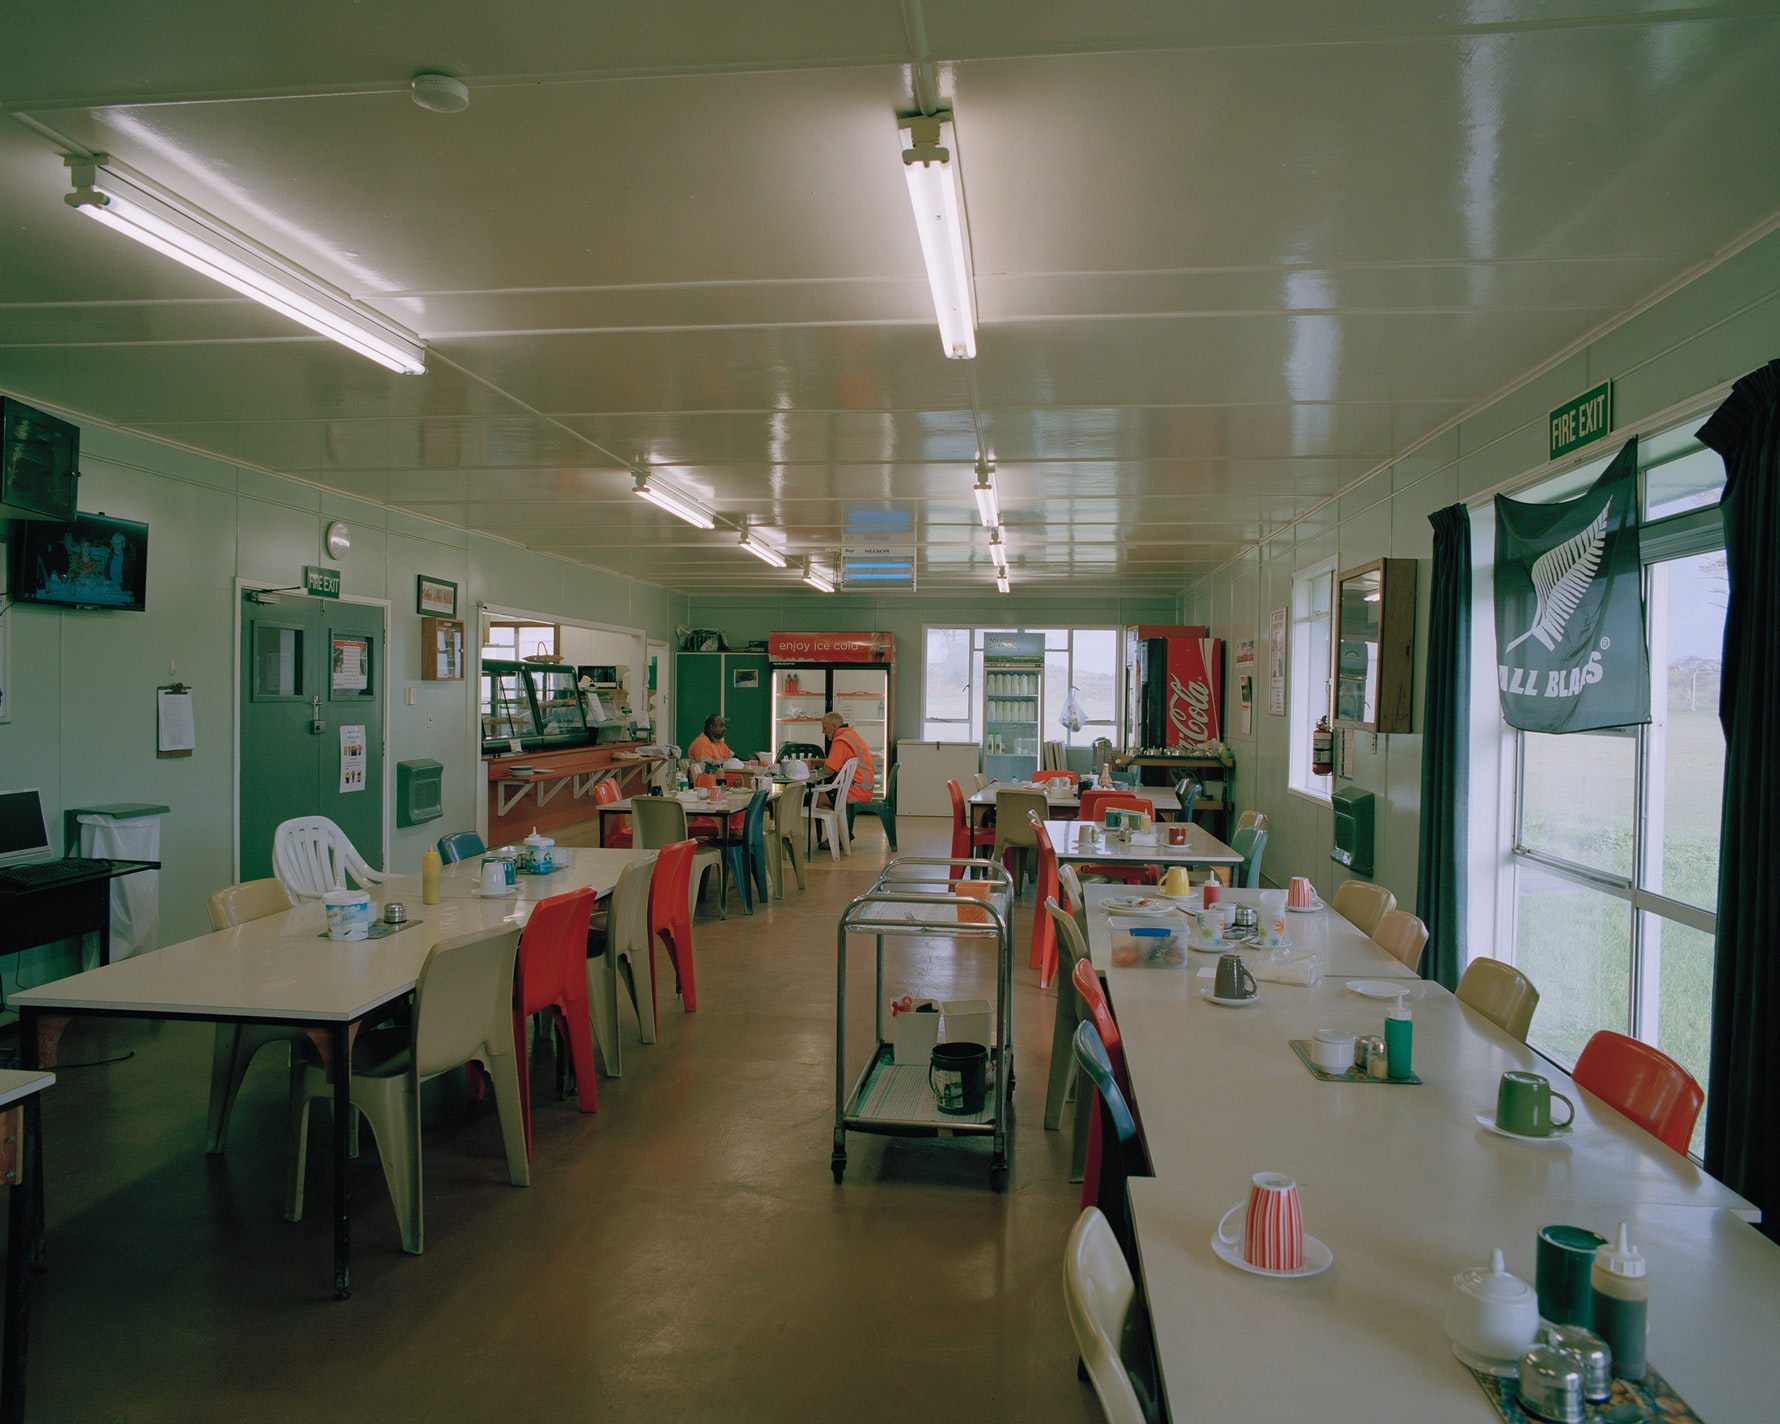 Cafeteria, Holcim Cement Plant Cape Foulwind, 2016